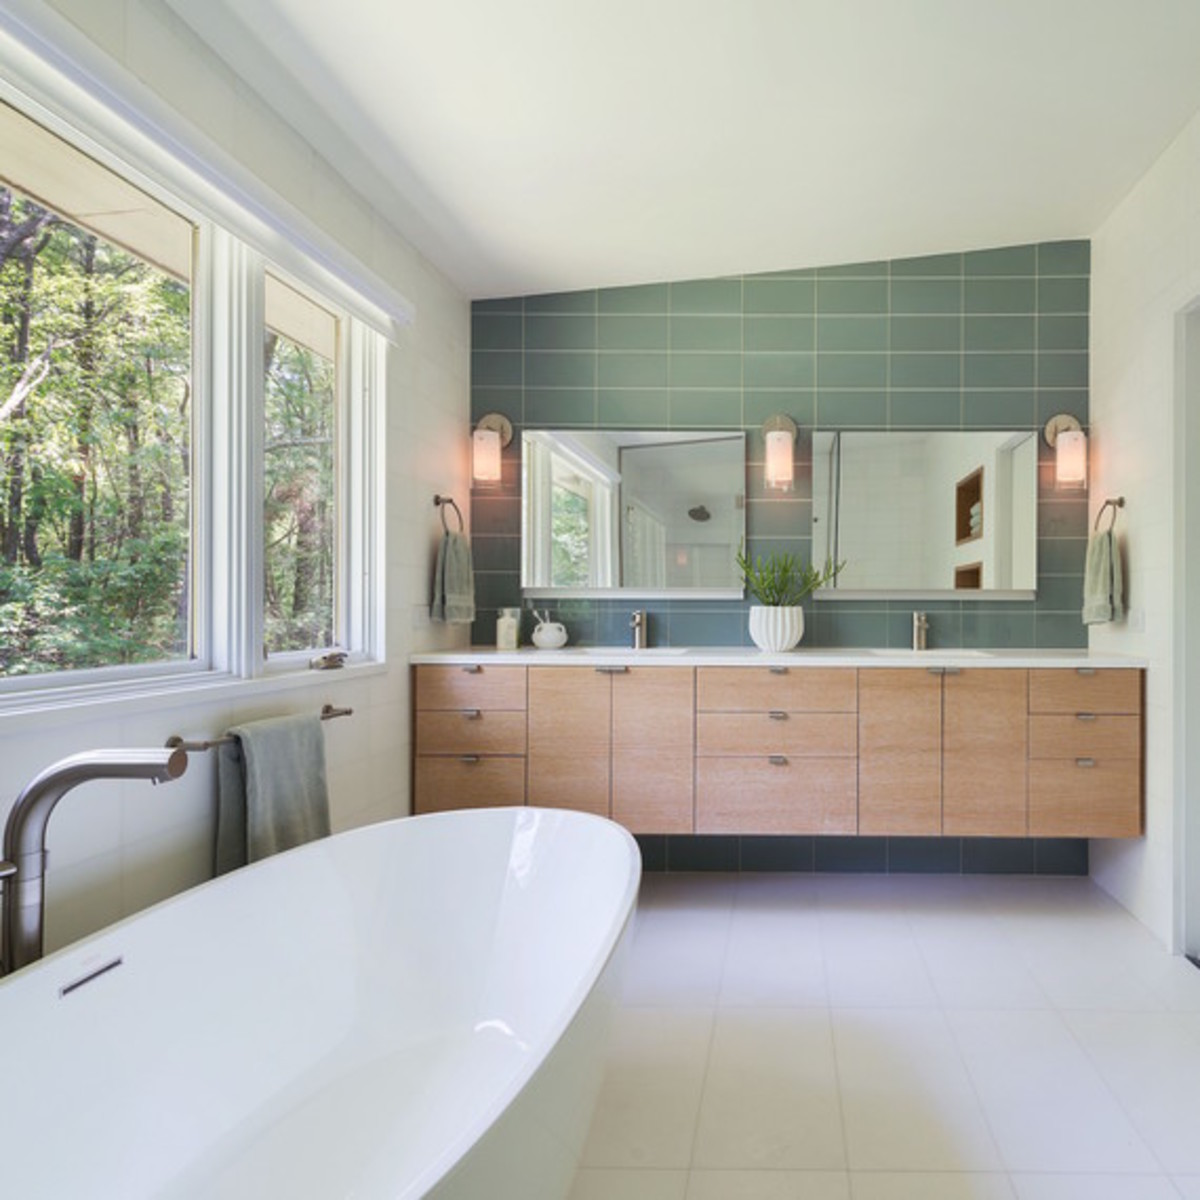 Neutral colors paired with organic tones create the perfect spa retreat.